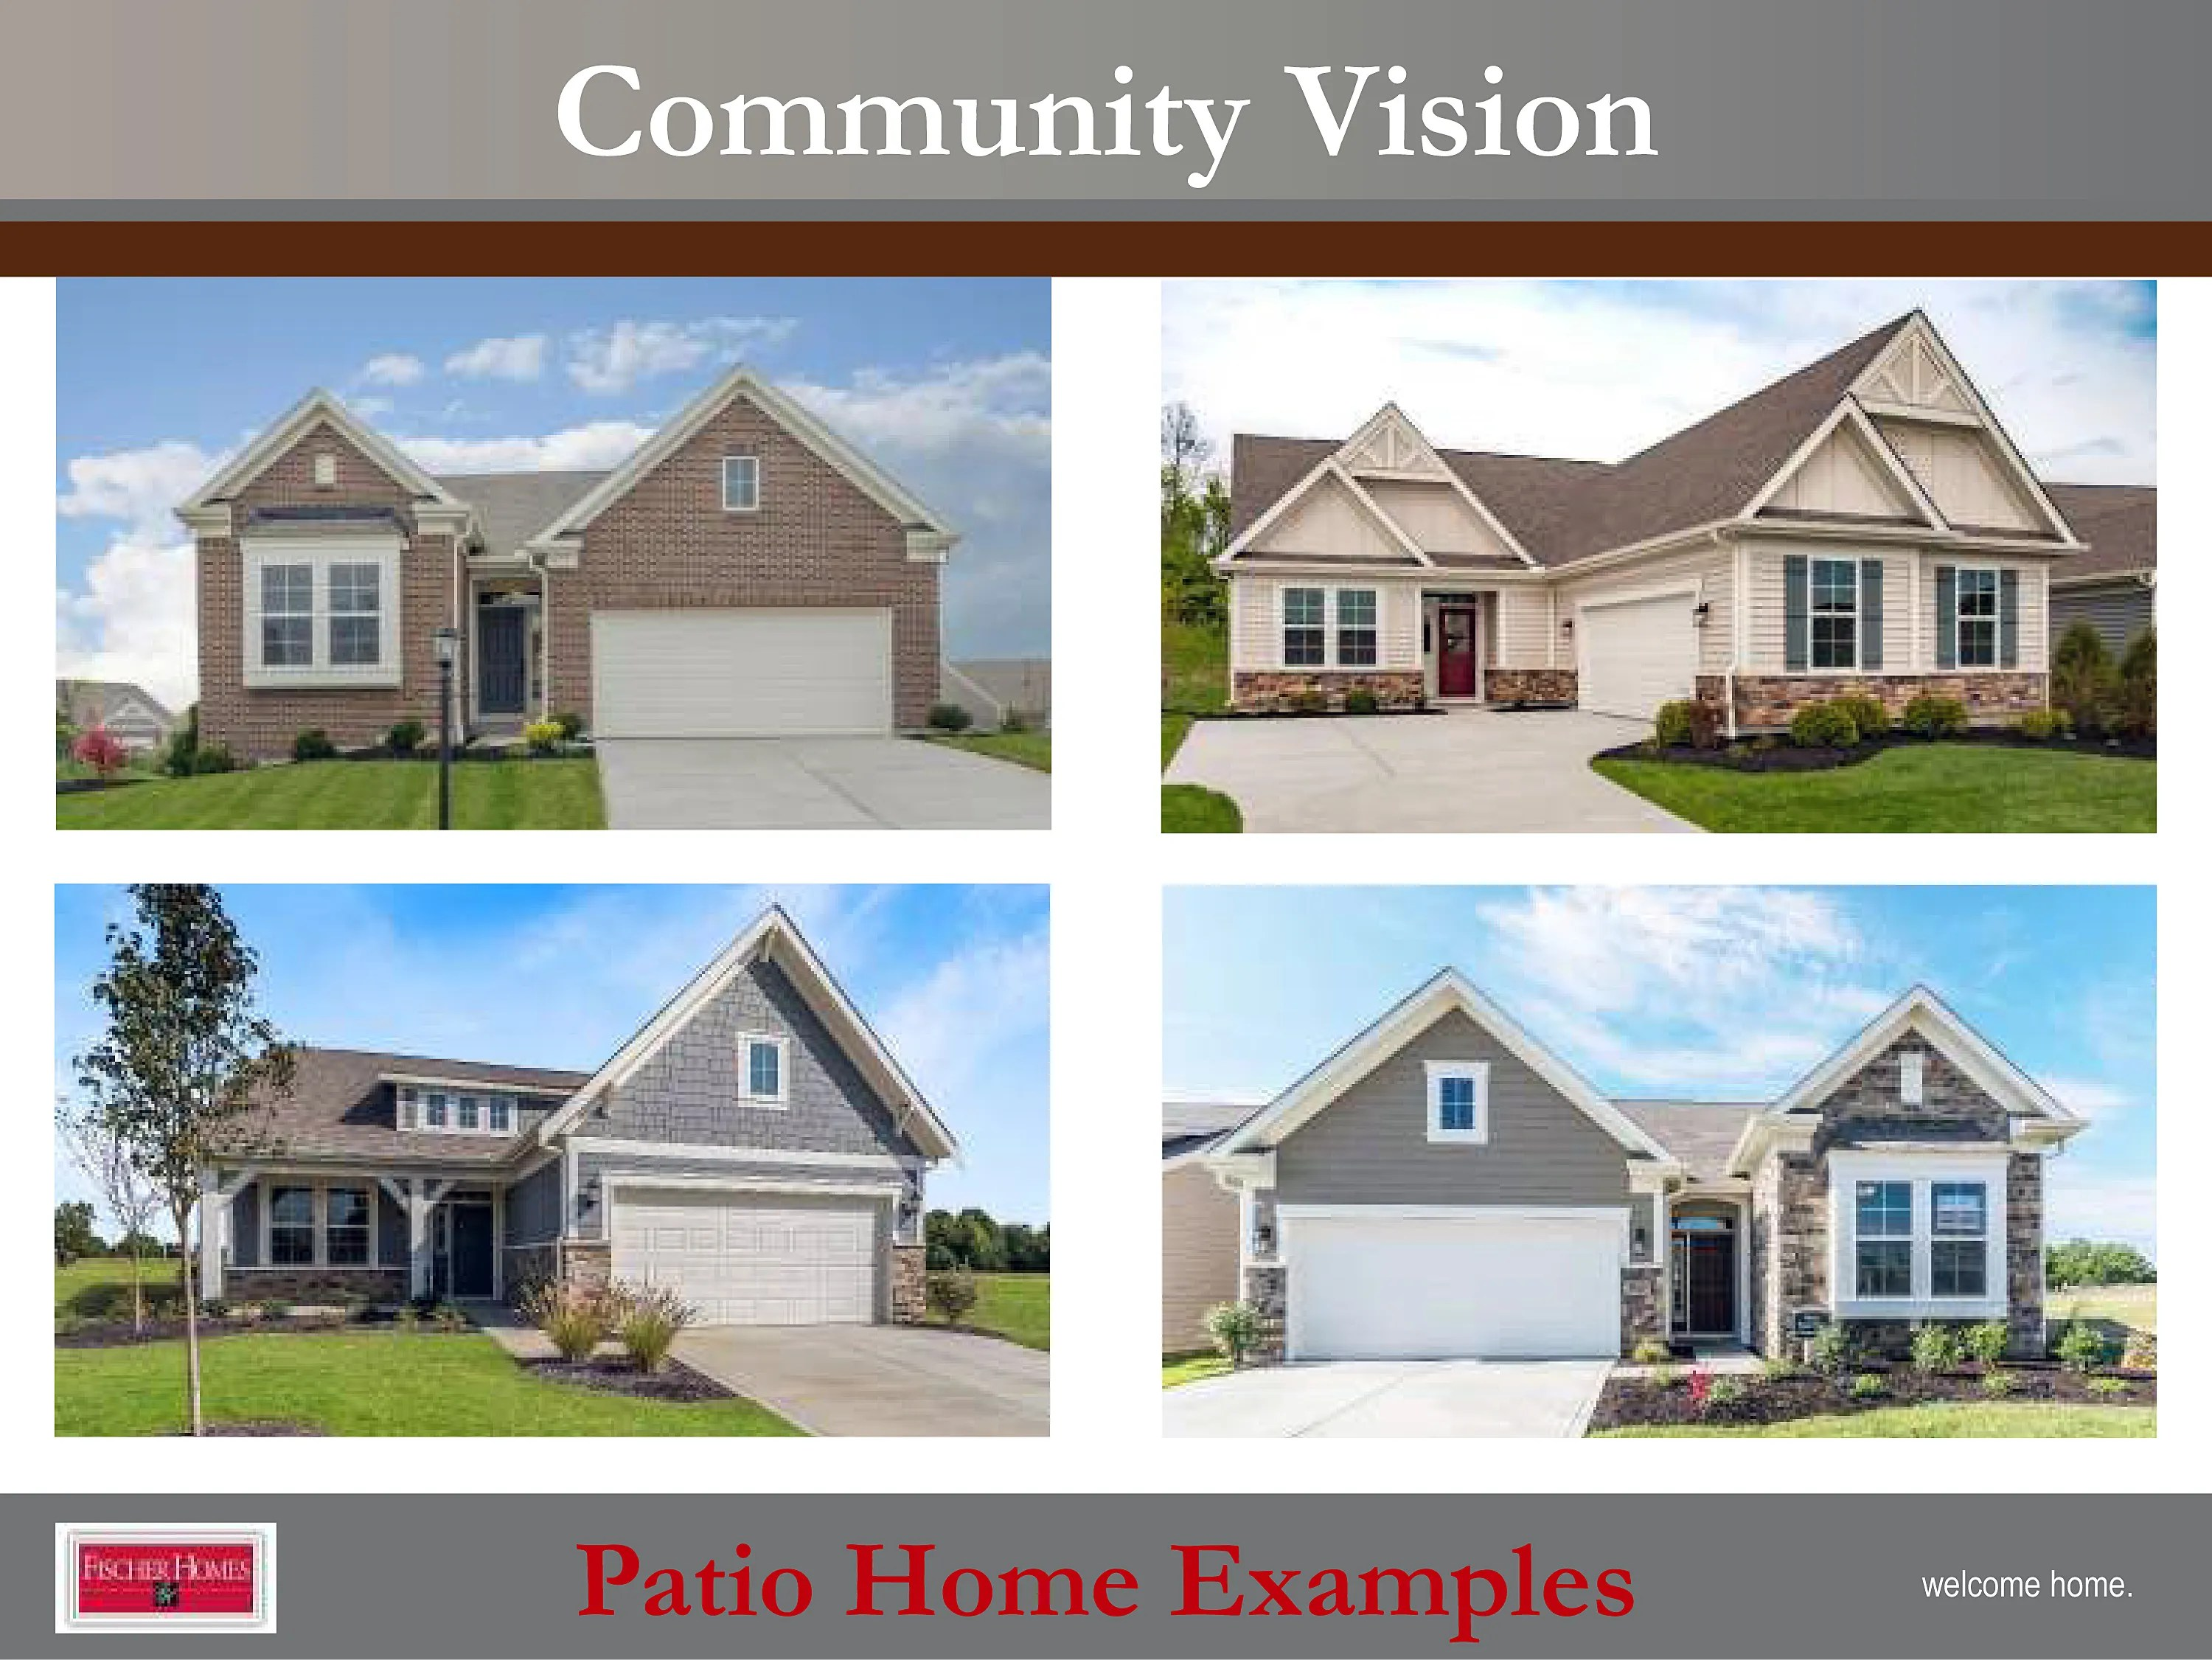 new patio homes at westfall preserve